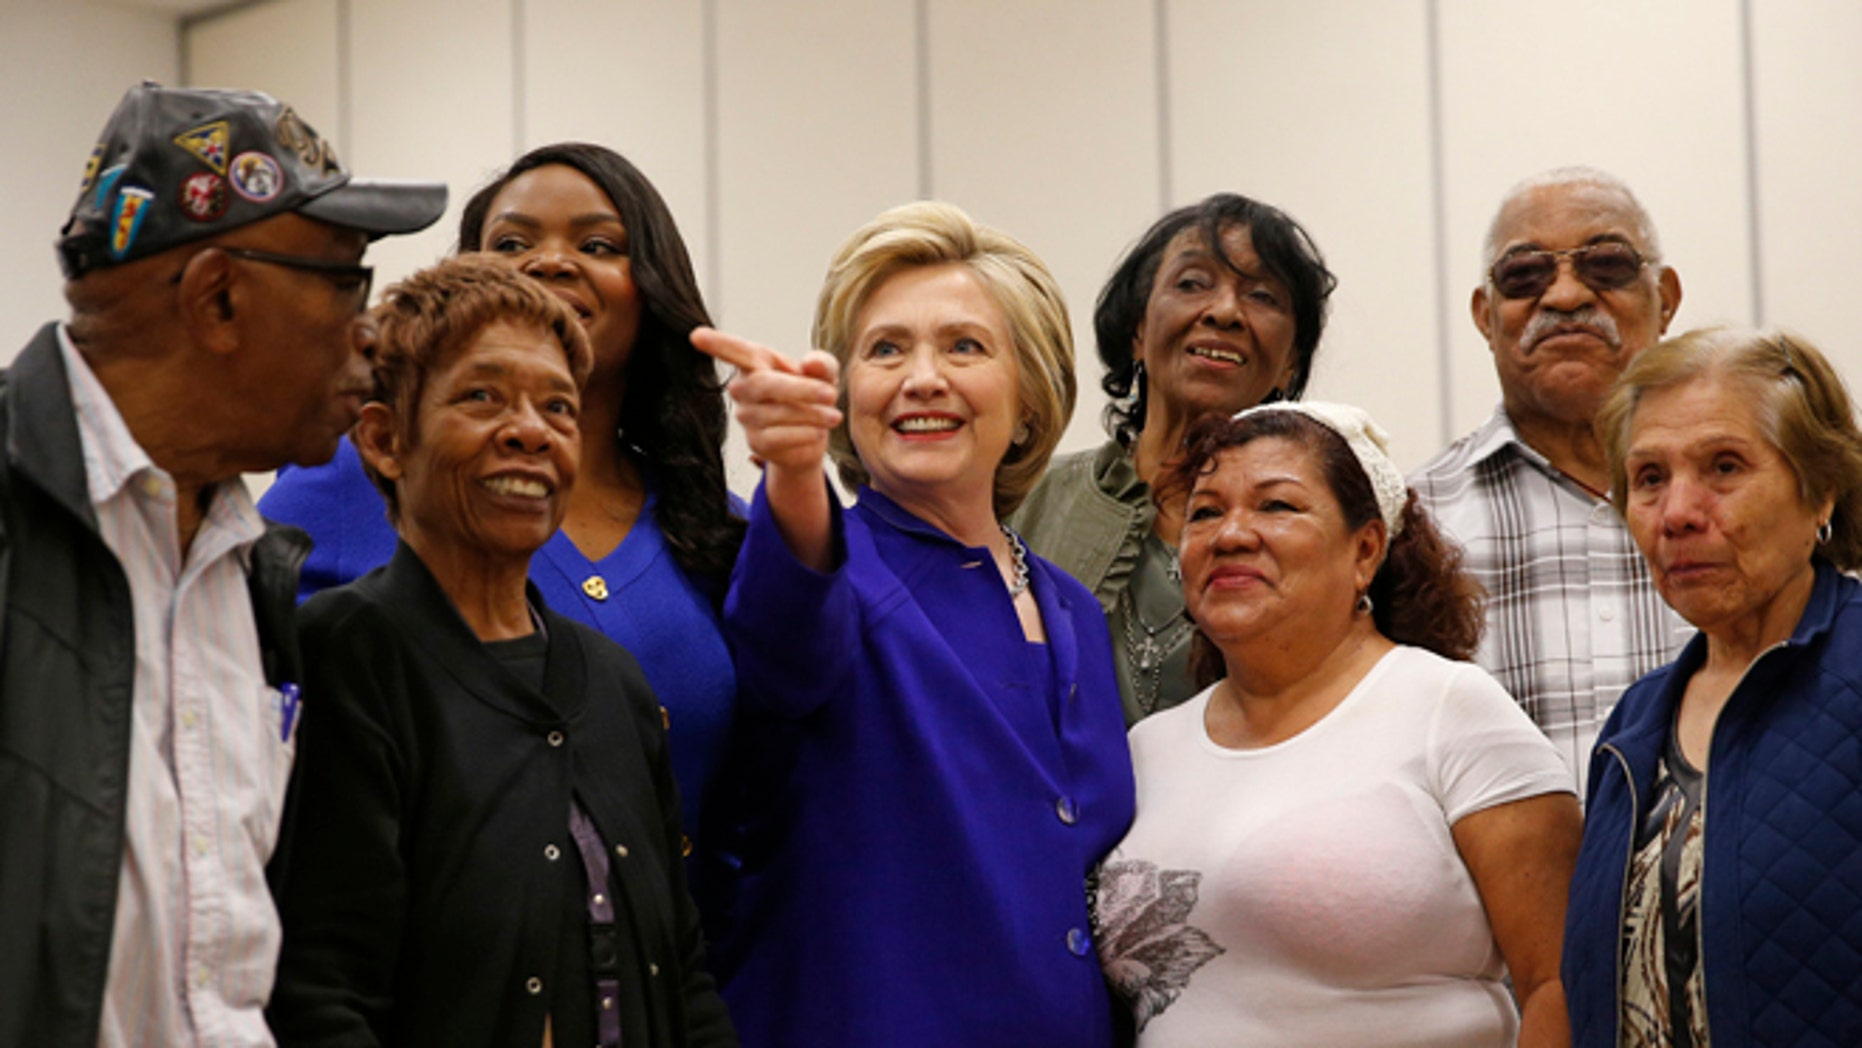 FILE - In this Monday, June 6, 2016 file photo, Democratic presidential candidate Hillary Clinton, center, visits a community center, Monday, June 6, 2016, in Compton, Calif. State officials are preparing to embrace an expanded California electorate Tuesday as nearly 18 million registered voters head for the polls or turn in early presidential primary ballots. (AP Photo/John Locher, File)